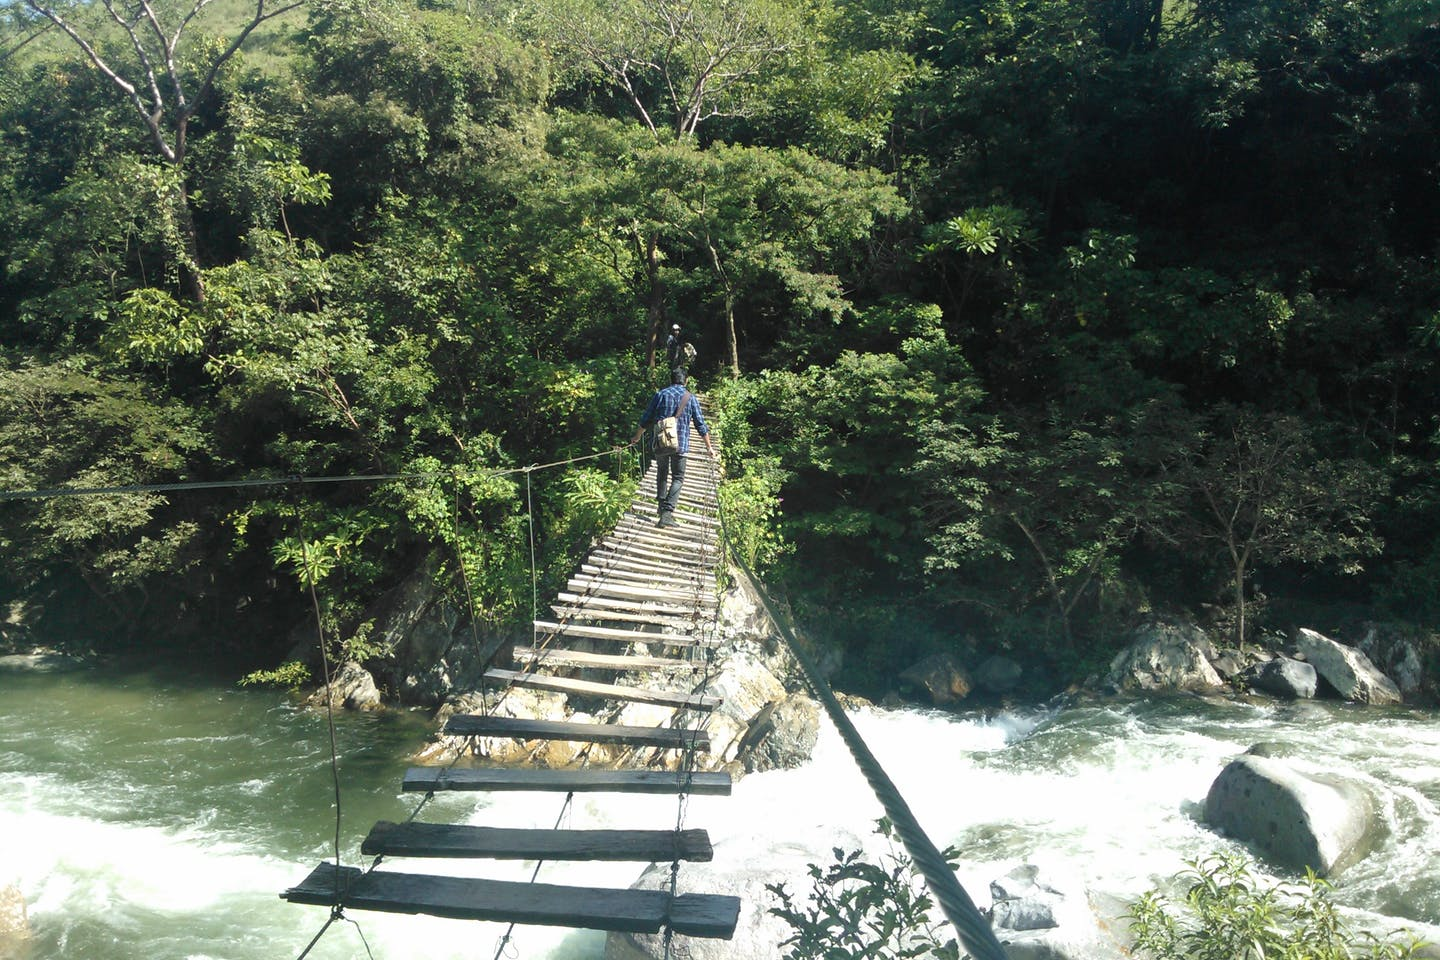 Footbridge over the Coapa River in Chiapas, Mexico